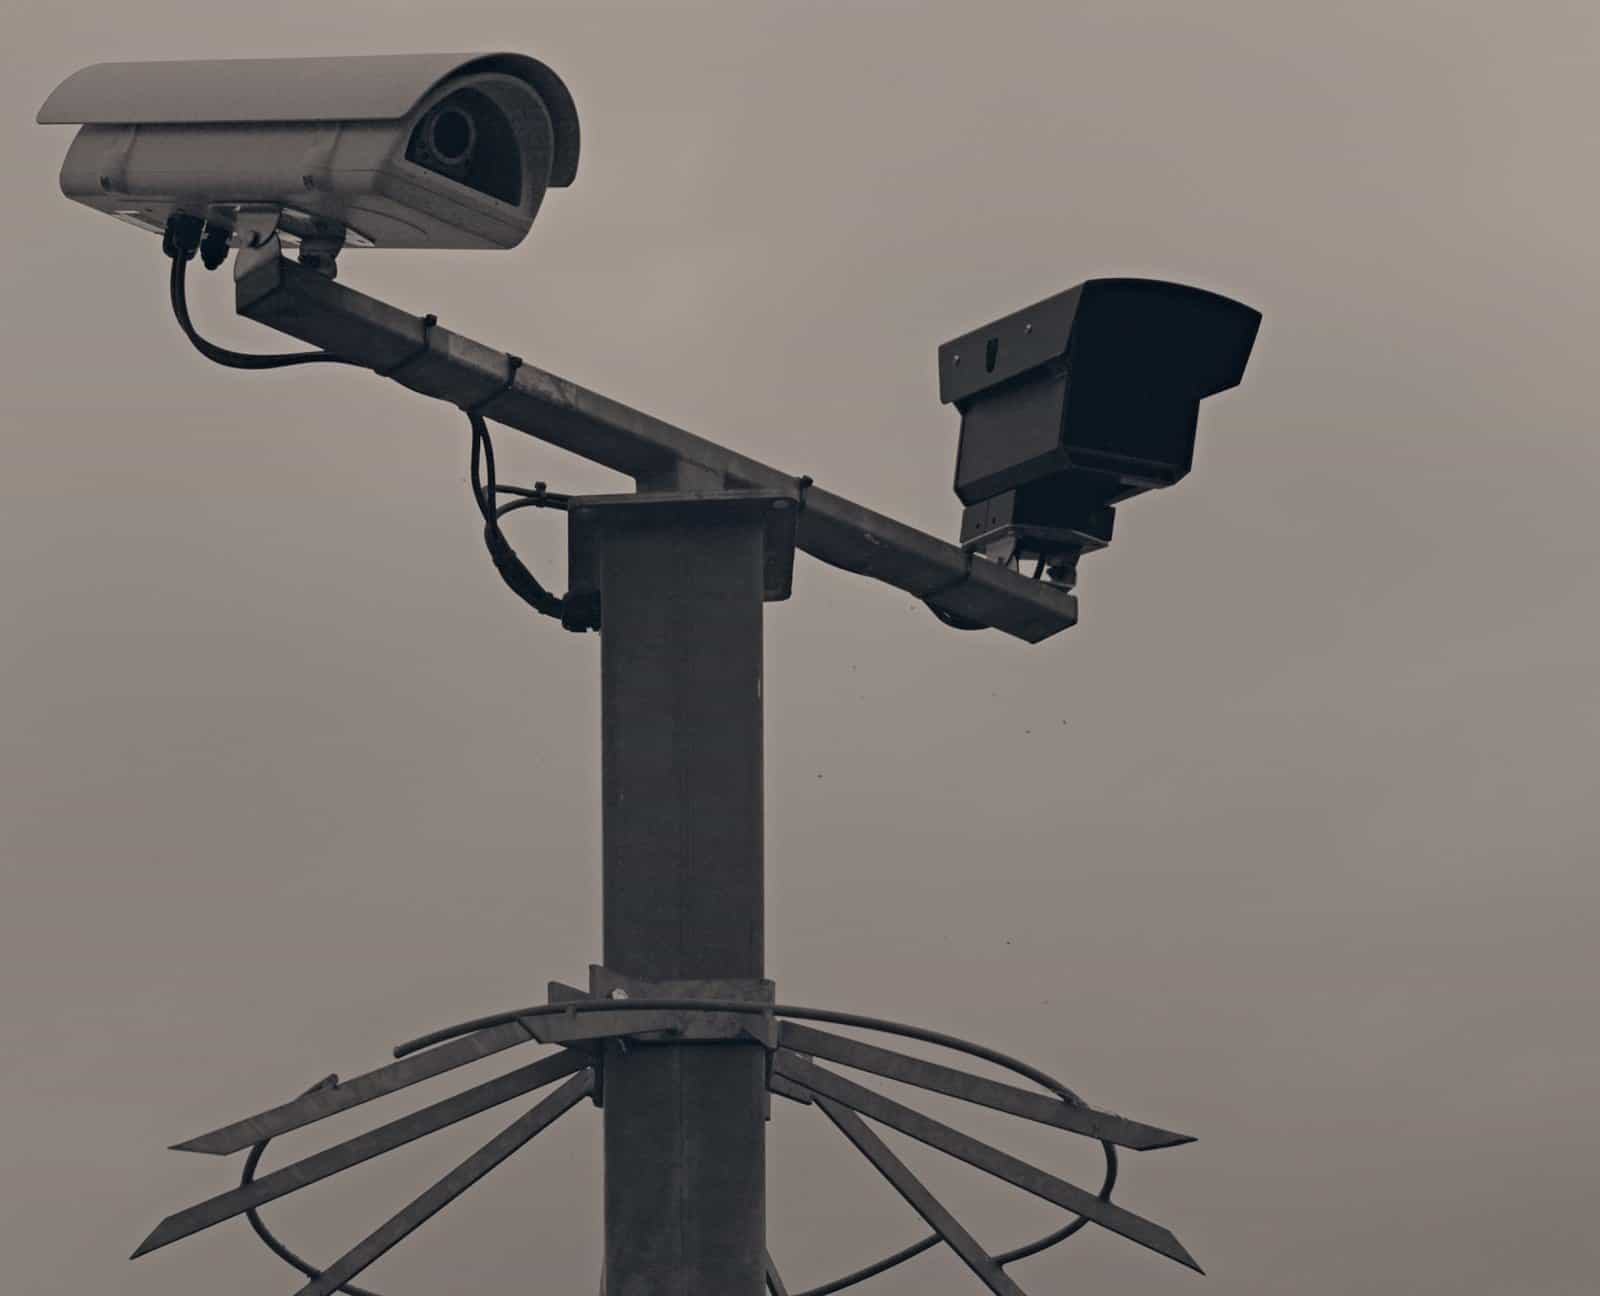 Two surveillance cameras mounted on a protected pole